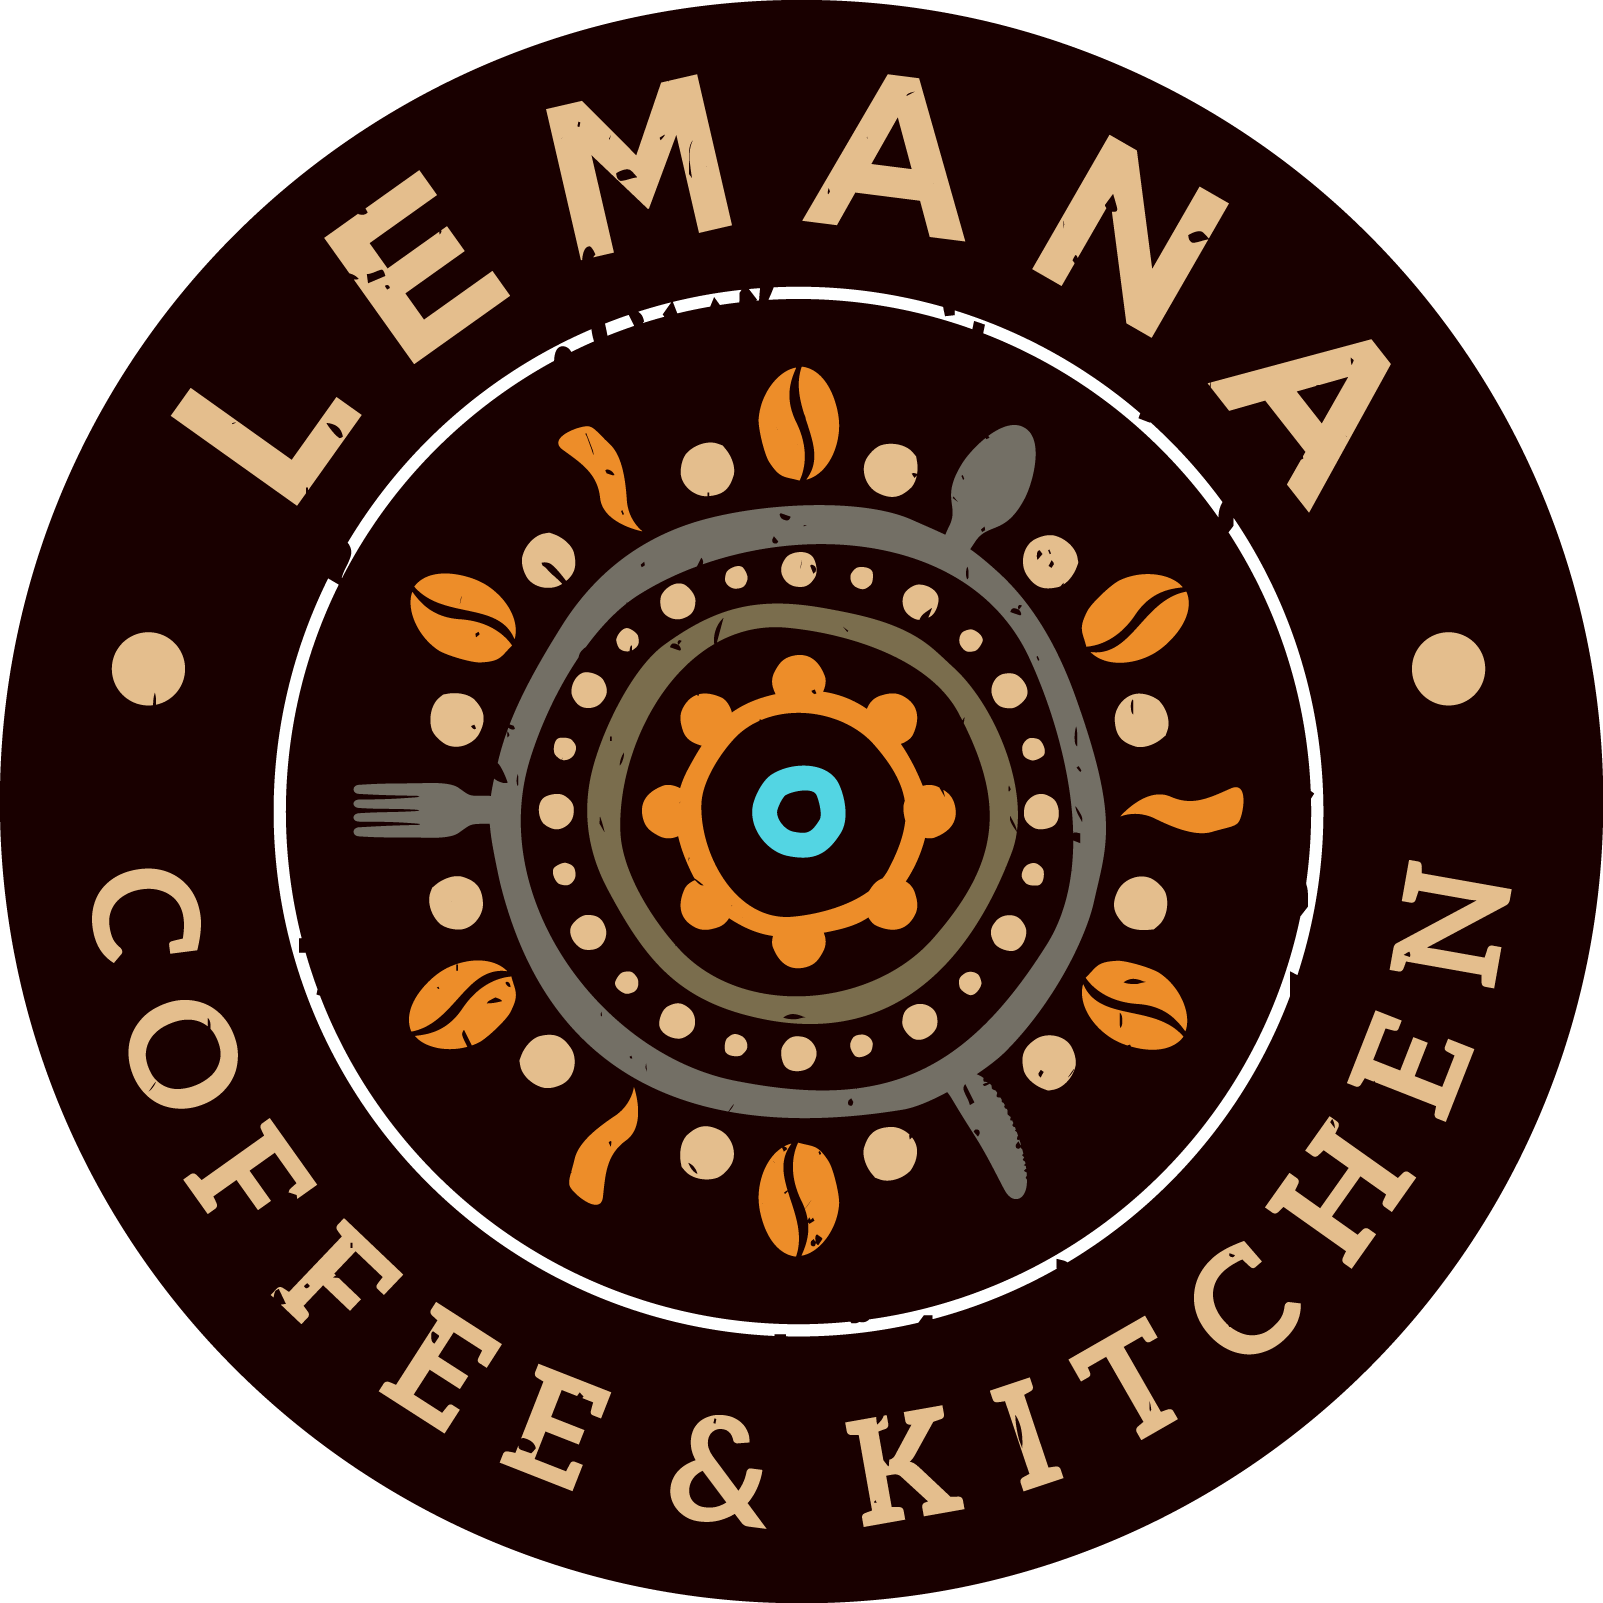 Lemana Coffee & Kitchen